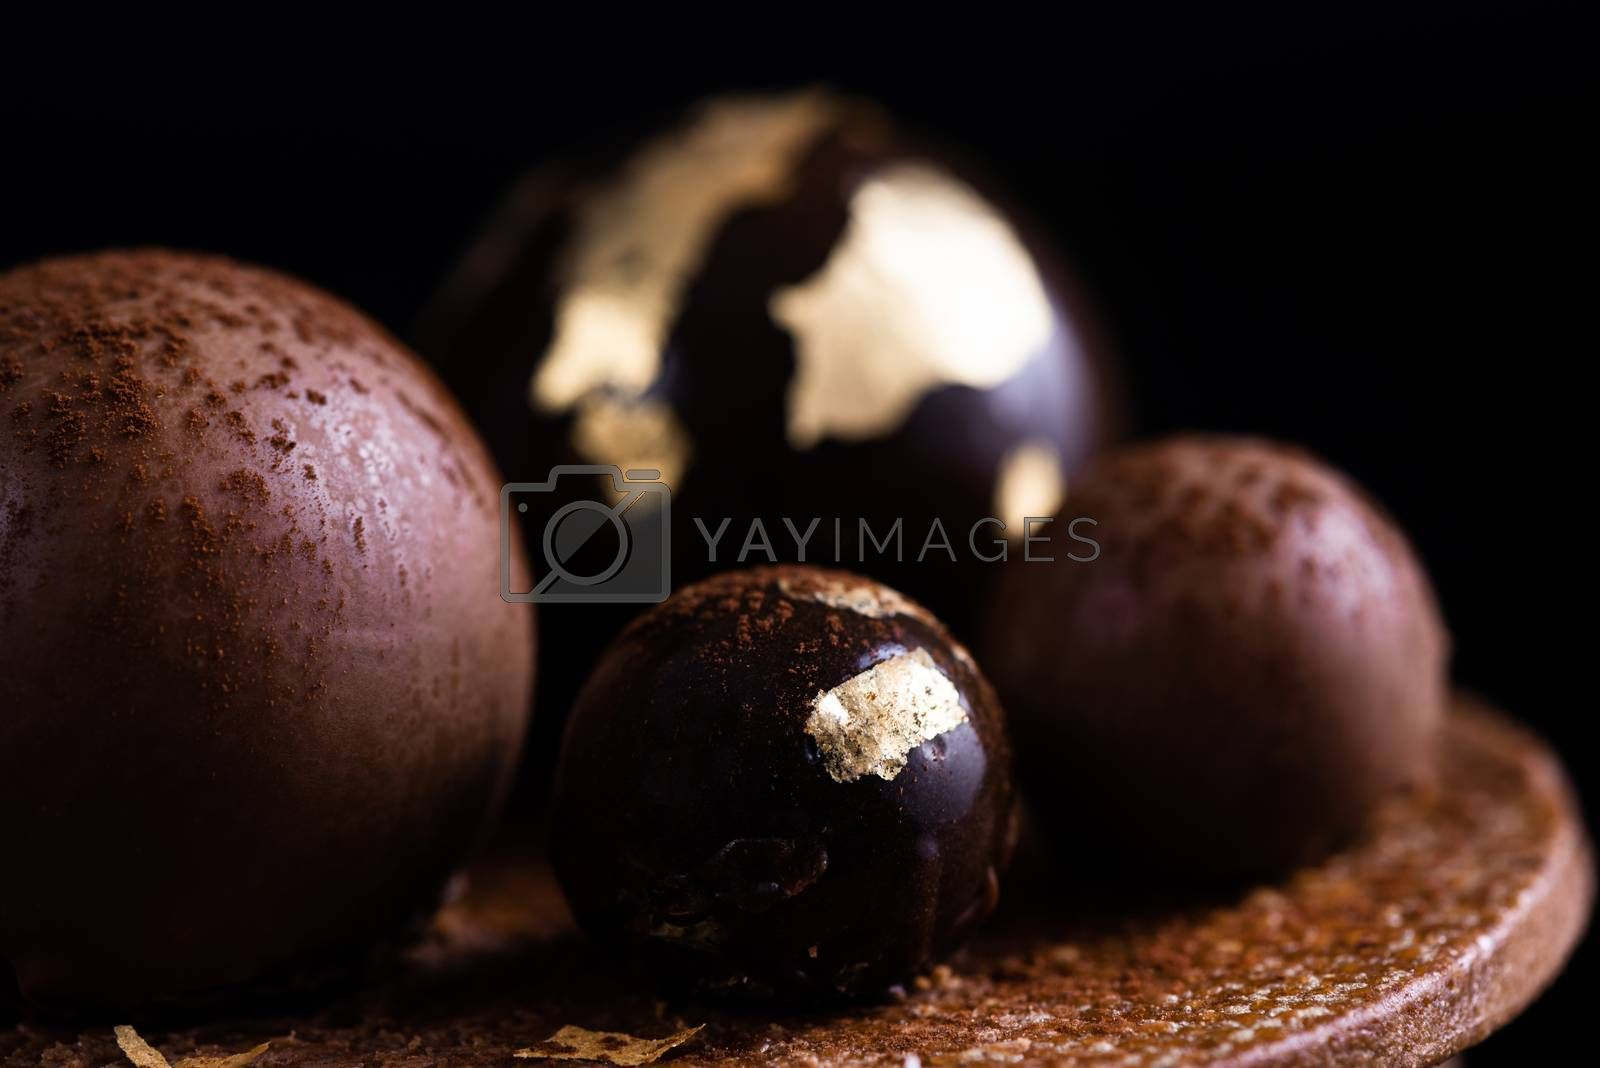 Handmade Patisserie Confection. Creative Art of Confectionery. Close Up Detail View.